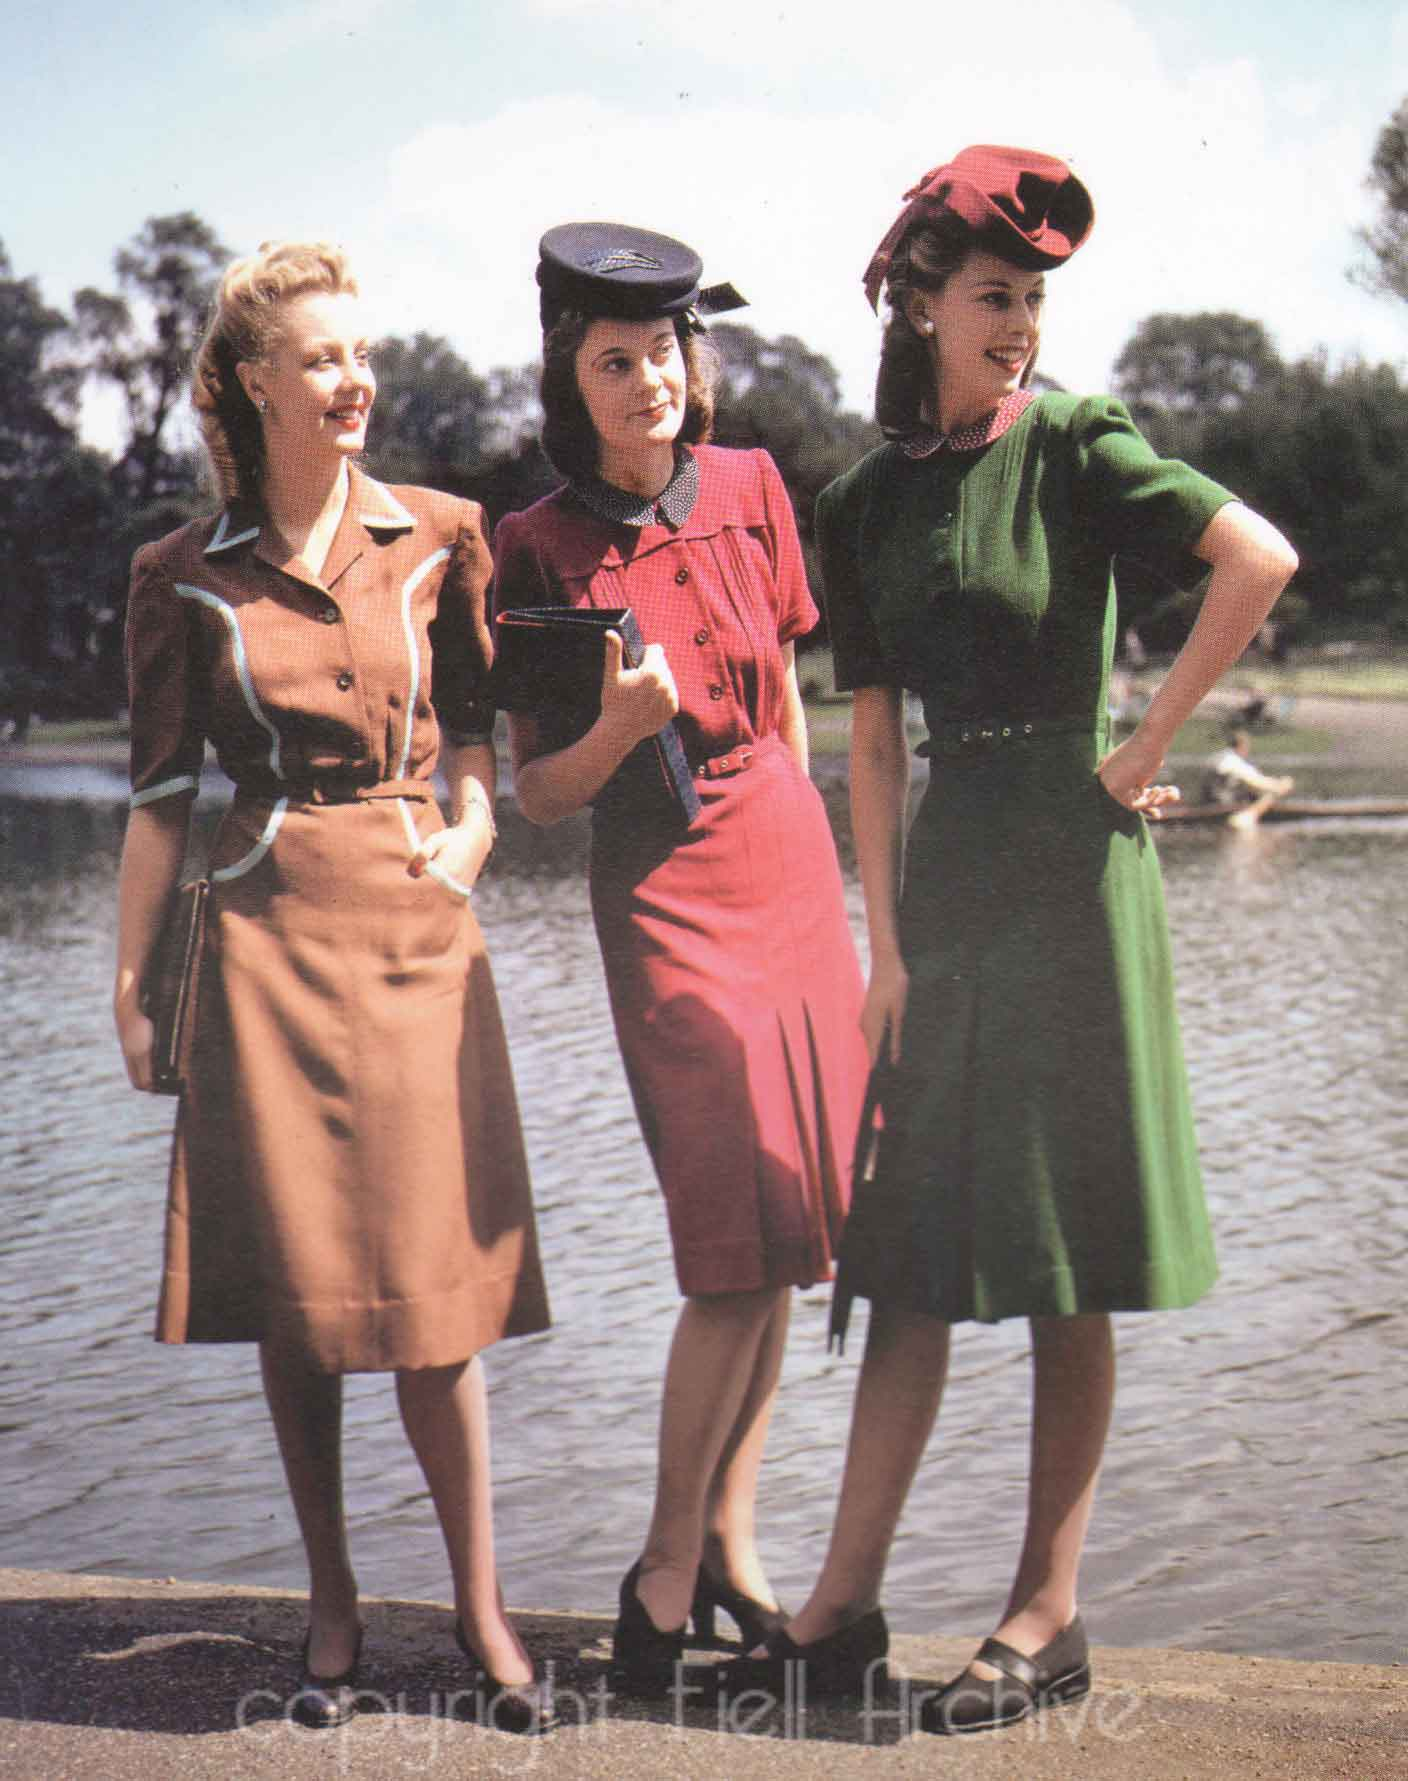 62 Vintage Photos Showing Womens Fashion During the 1940s